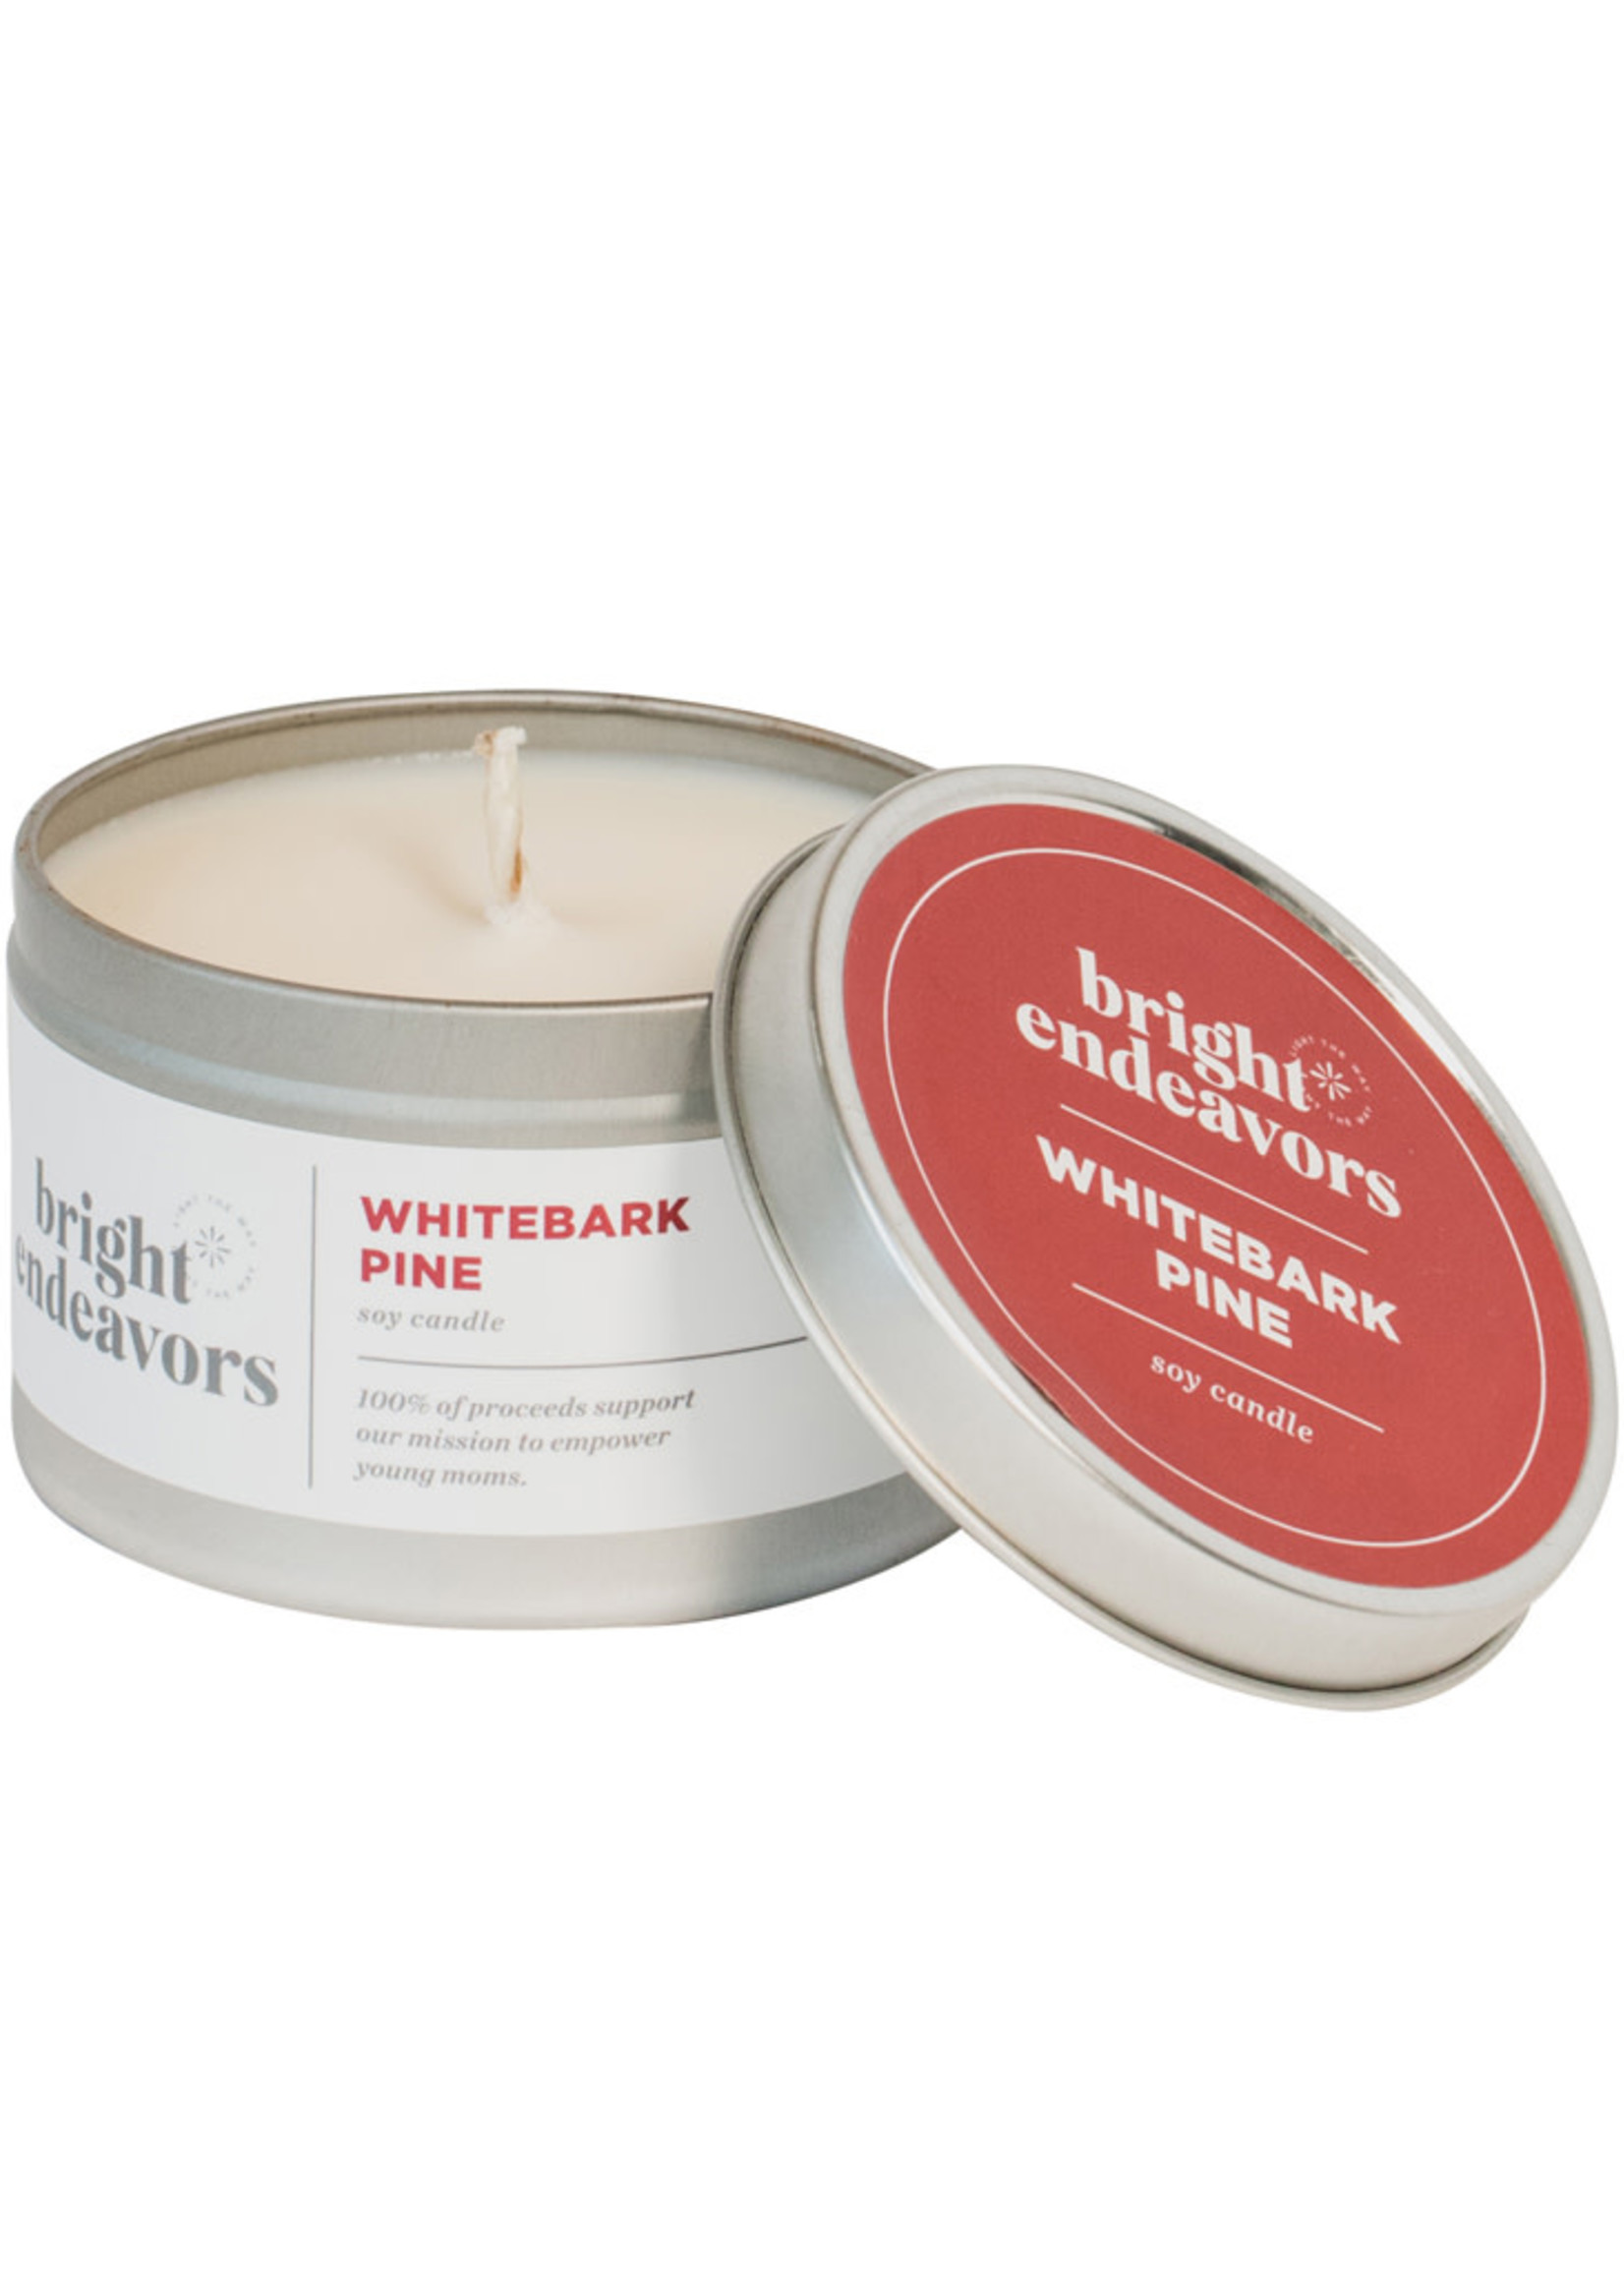 Bright Endeavors White Bark Pine Soy Candle